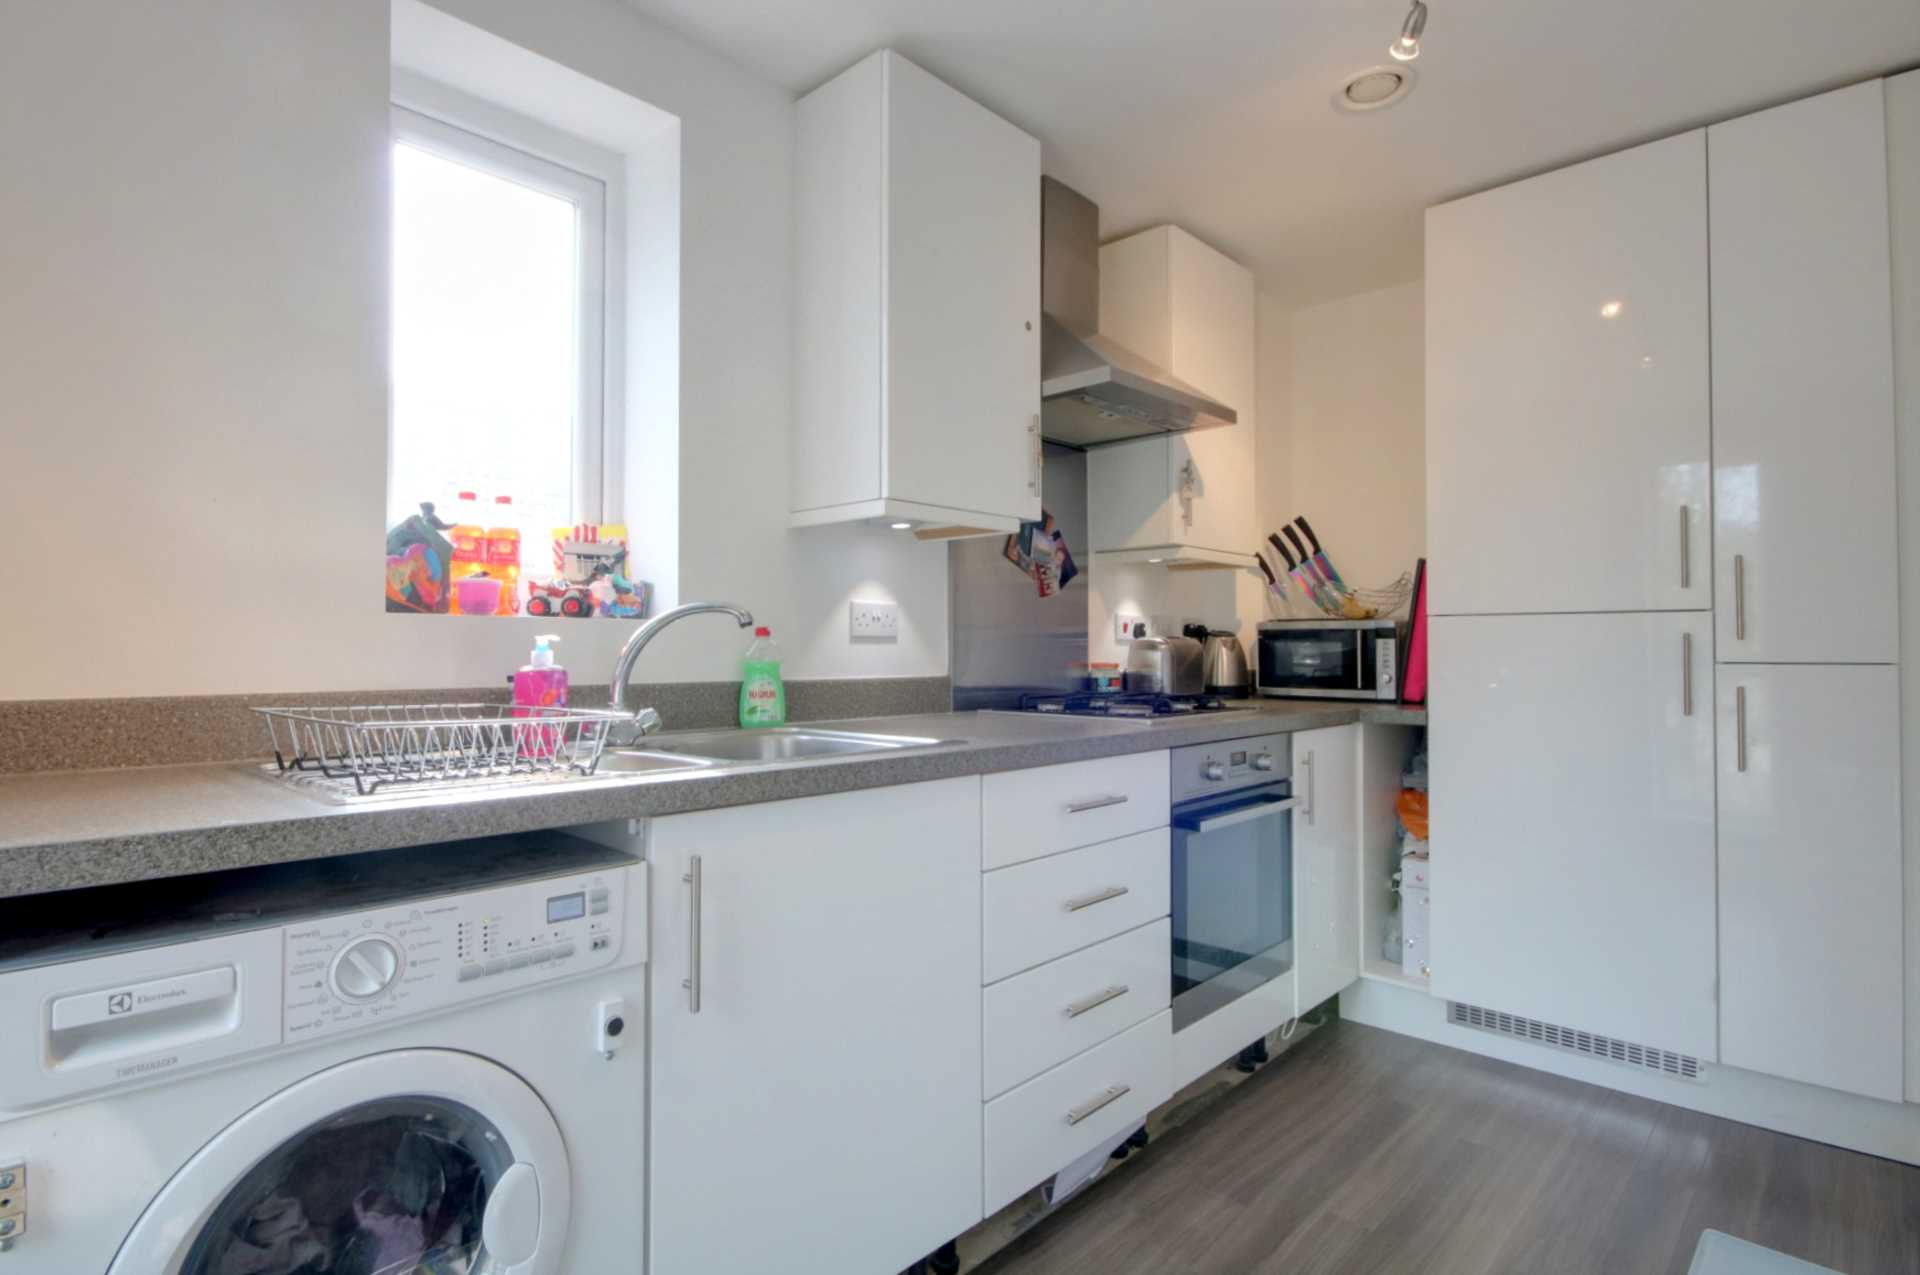 2 DOUBLE BED APARTMENT WITH 2 PARKING SPACES ON MODERN DEVELOPMENT., Image 5